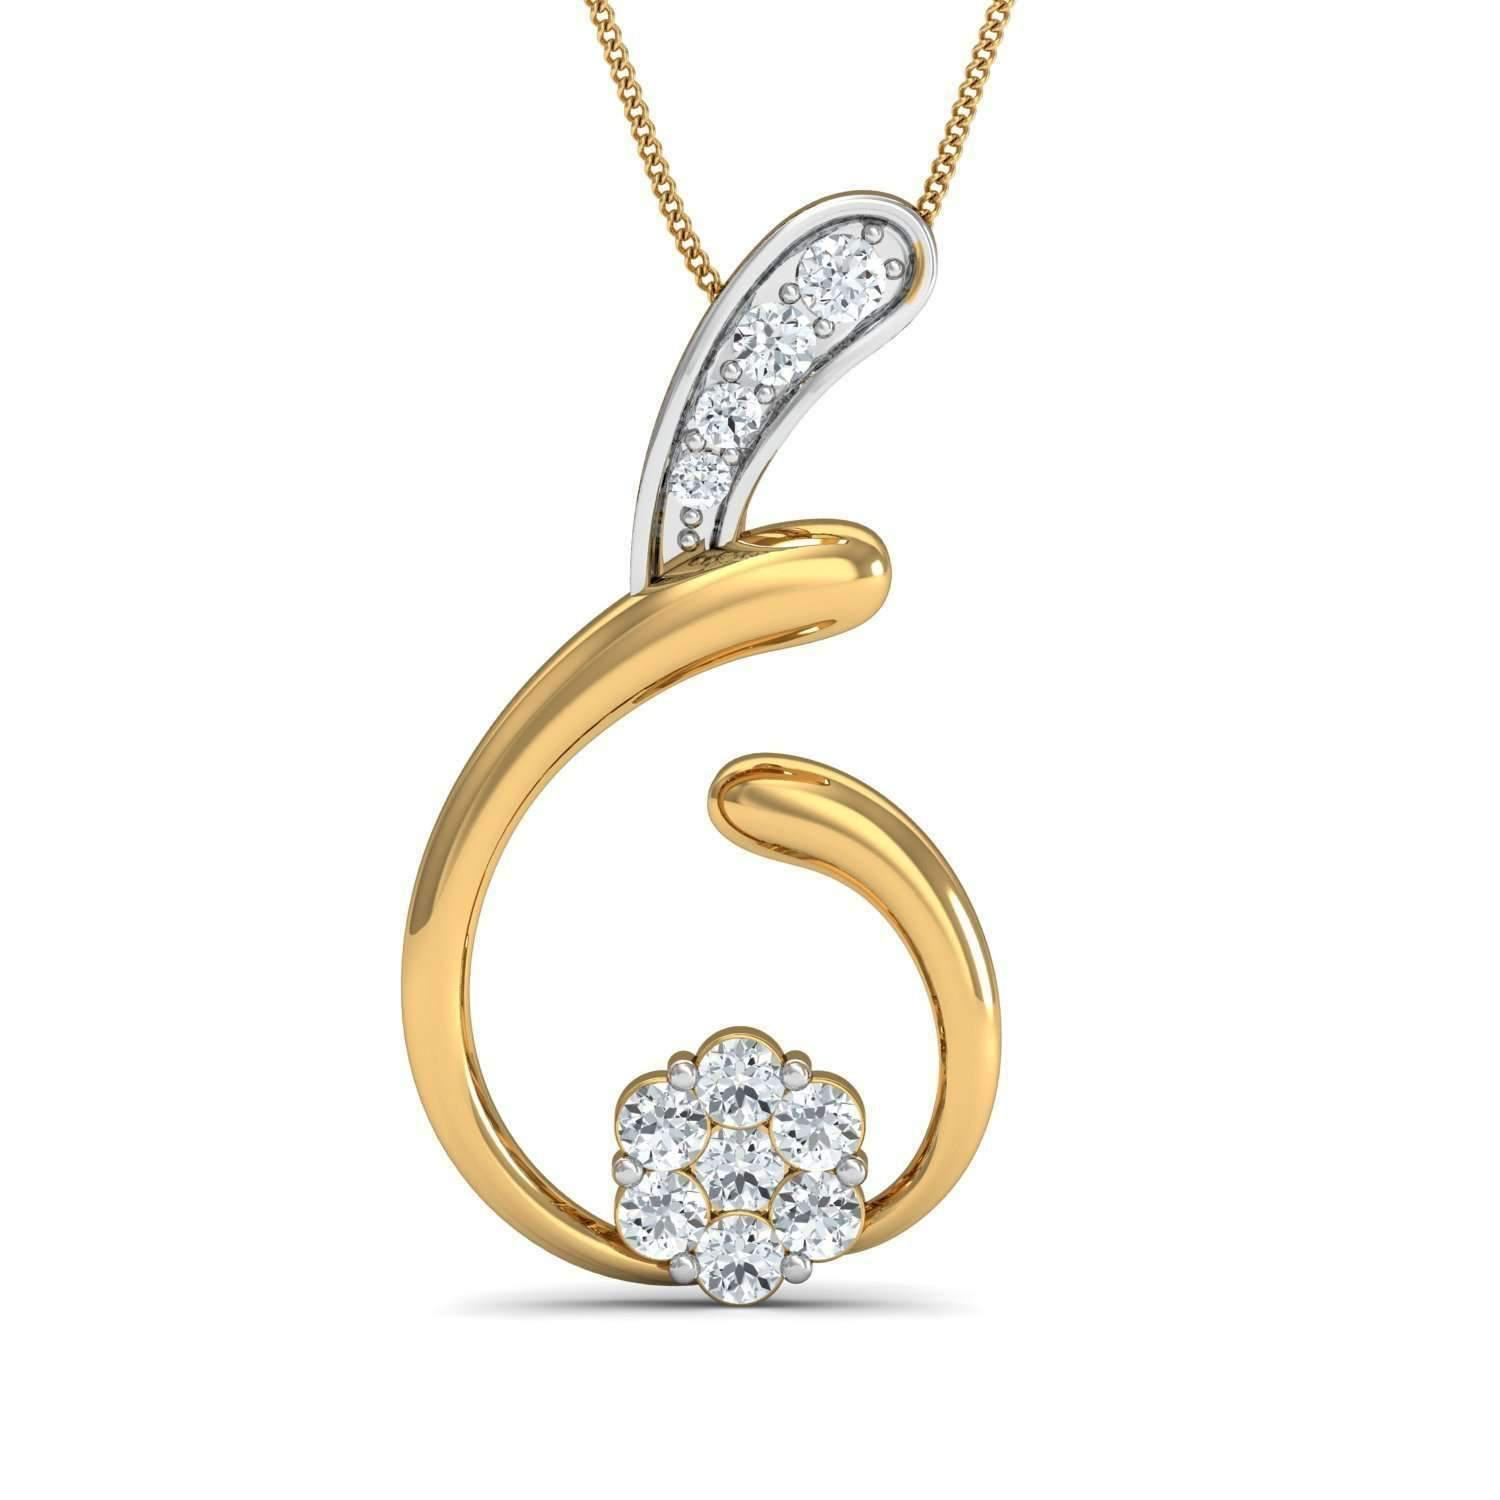 Diamoire Jewels Hand-carved 10kt Yellow Gold Nature Inspired Diamond Pave Pendant GMpnjTh